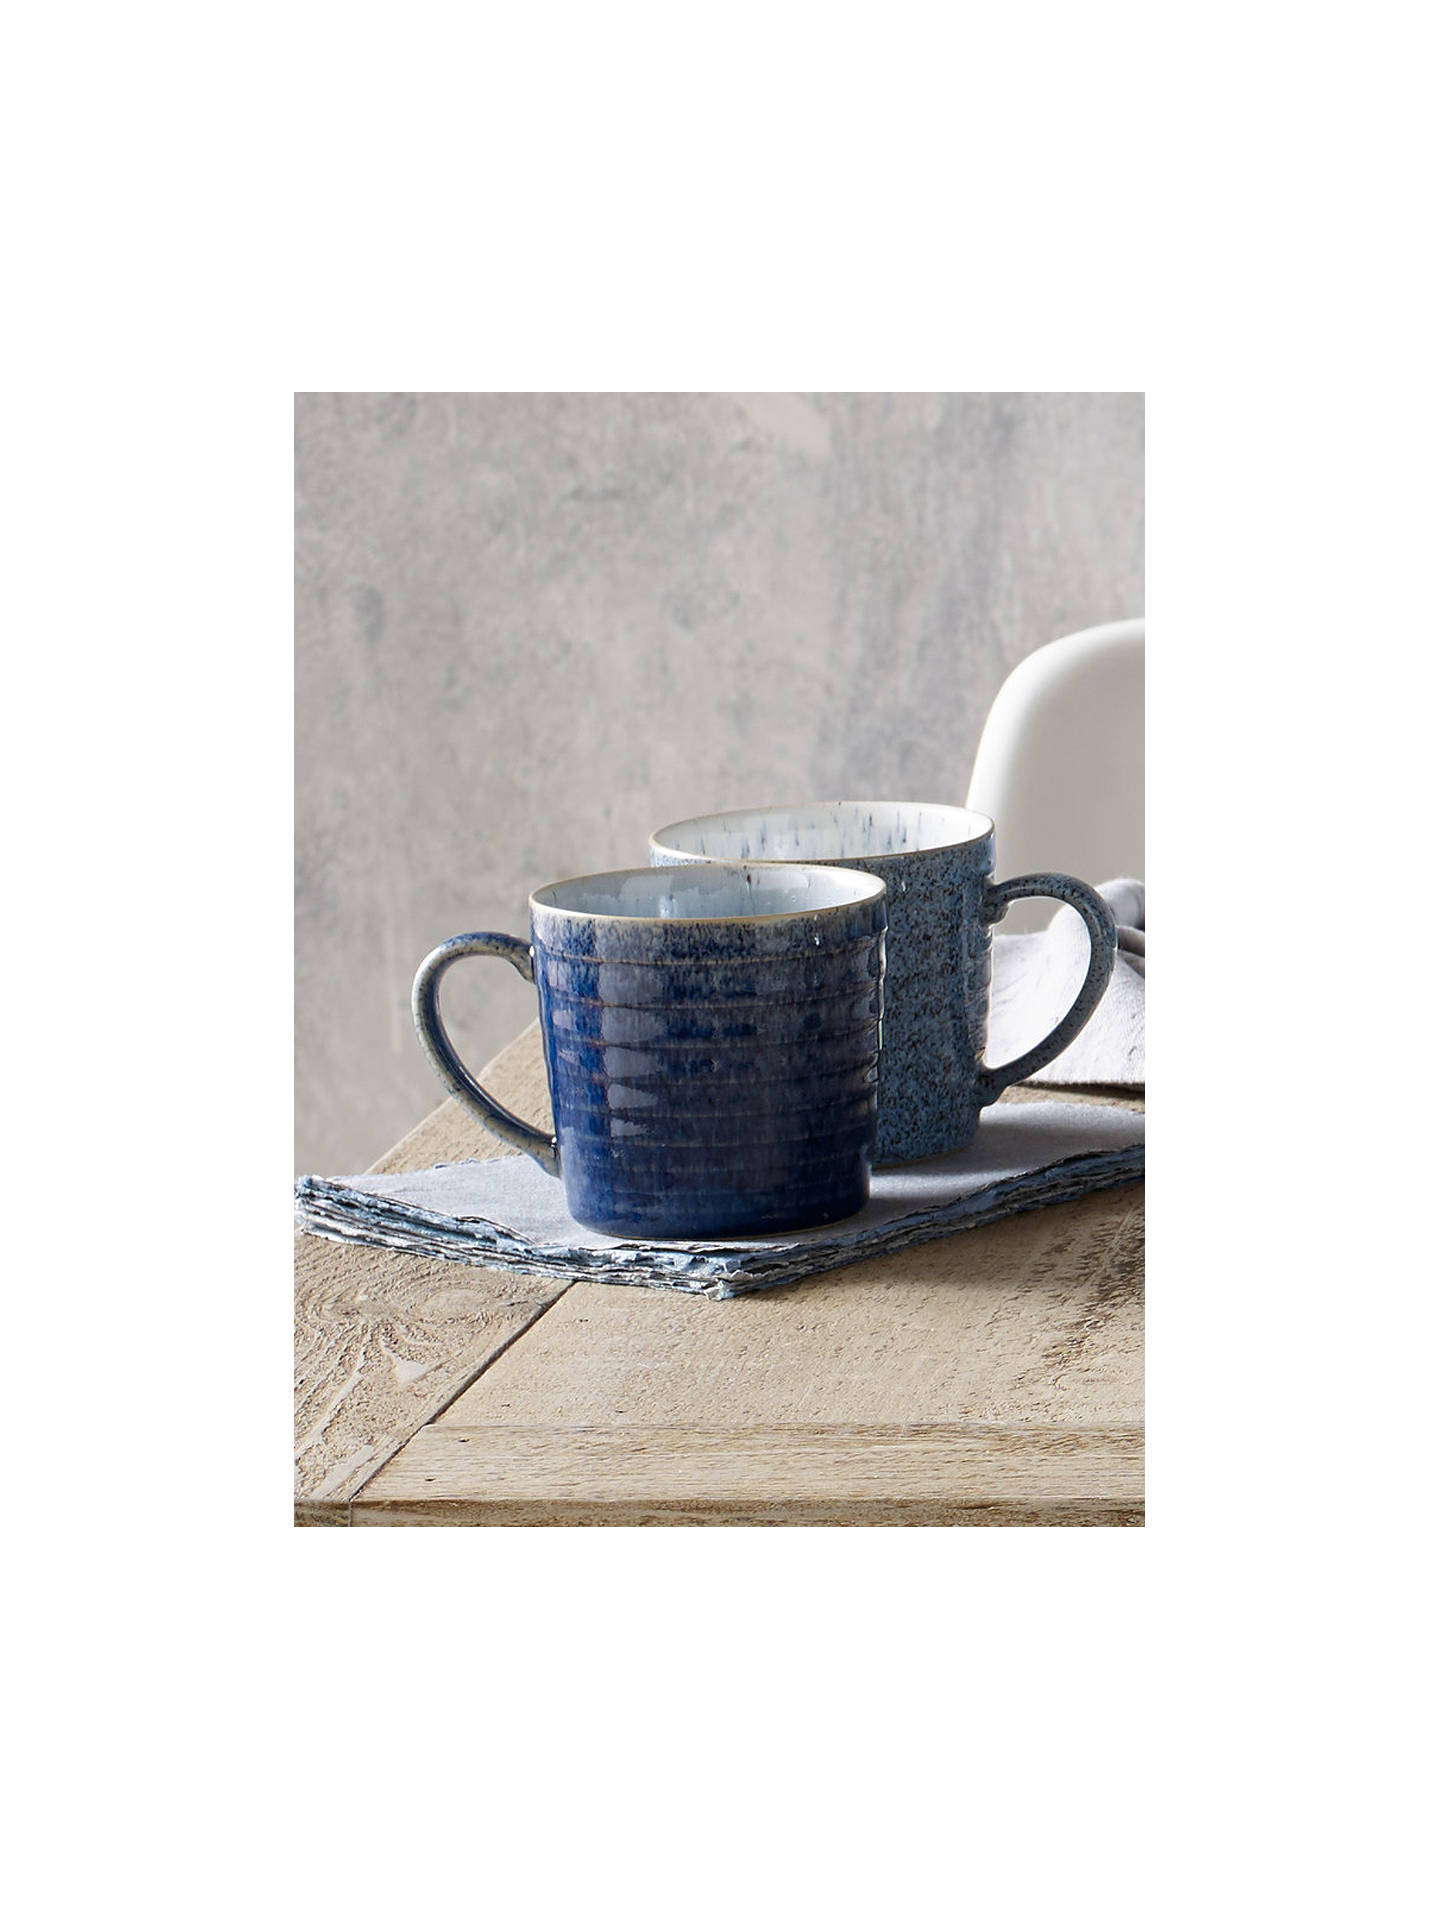 BuyDenby Studio Blue Pasta Bowls, Chalk/Blue, Dia.22cm, Set of 4 Online at johnlewis.com